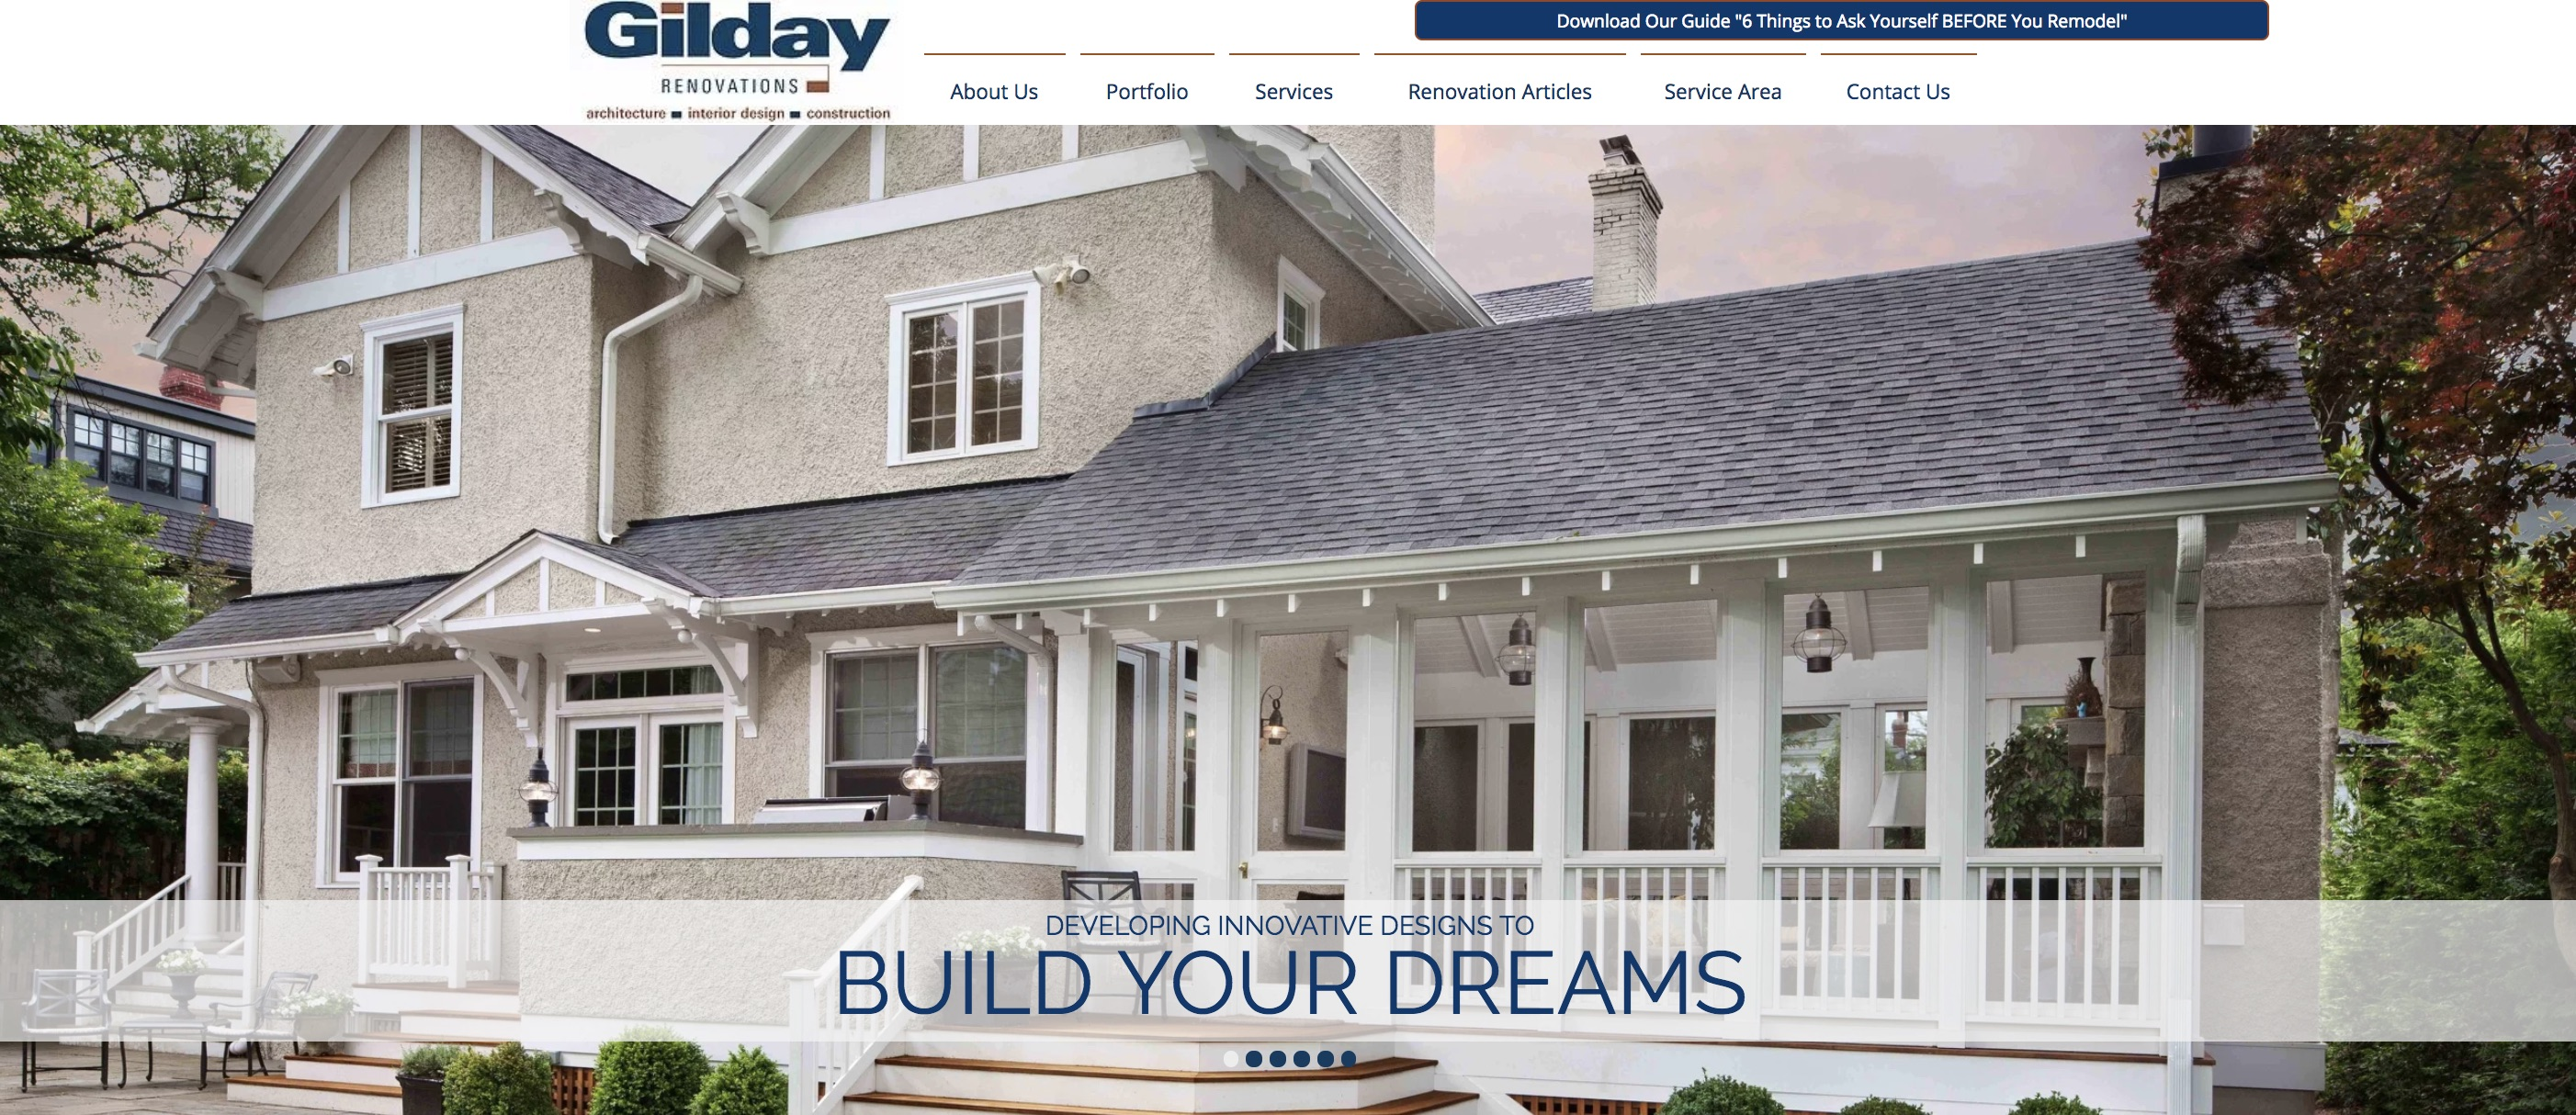 Gilday Renovations Partners with Bristol Strategy